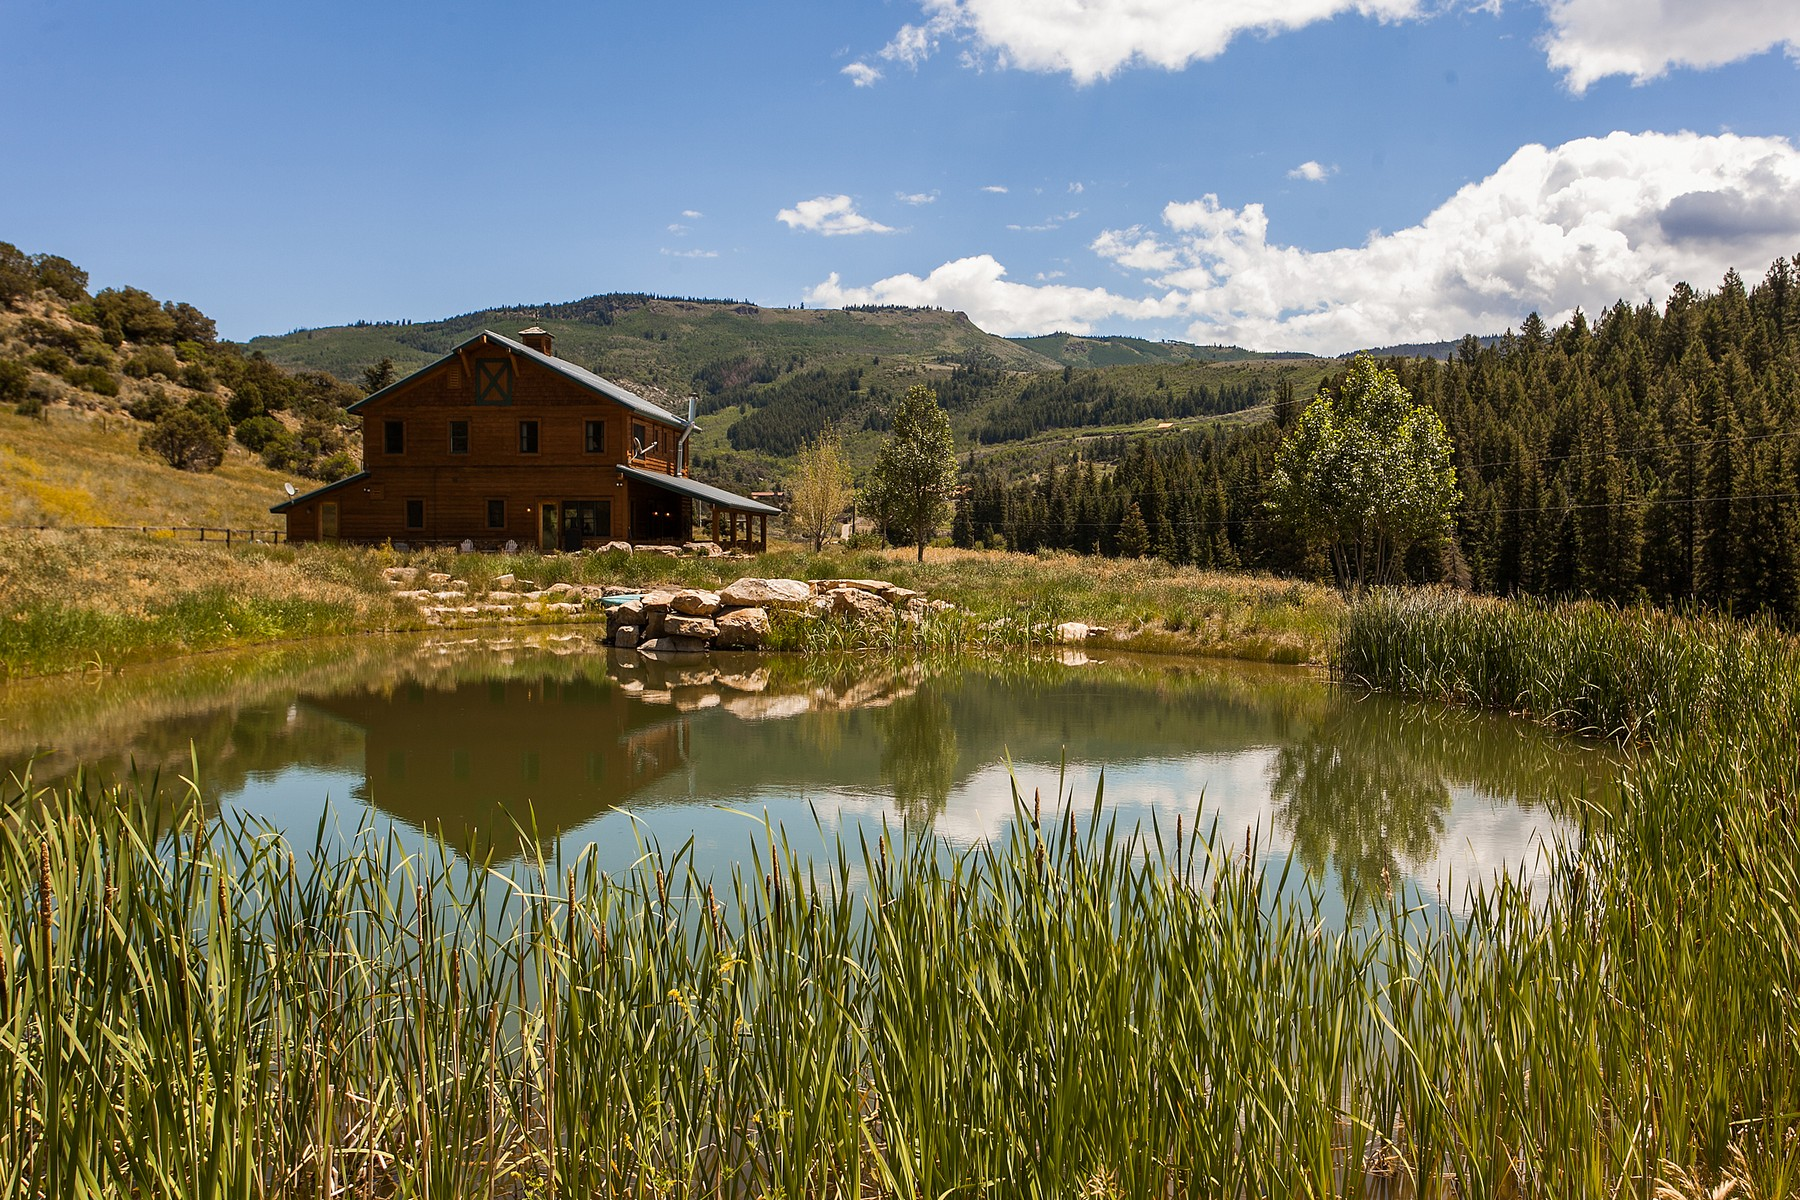 Single Family Home for Active at La Montana Ranch 3000 Salt Creek Road Eagle, Colorado 81631 United States